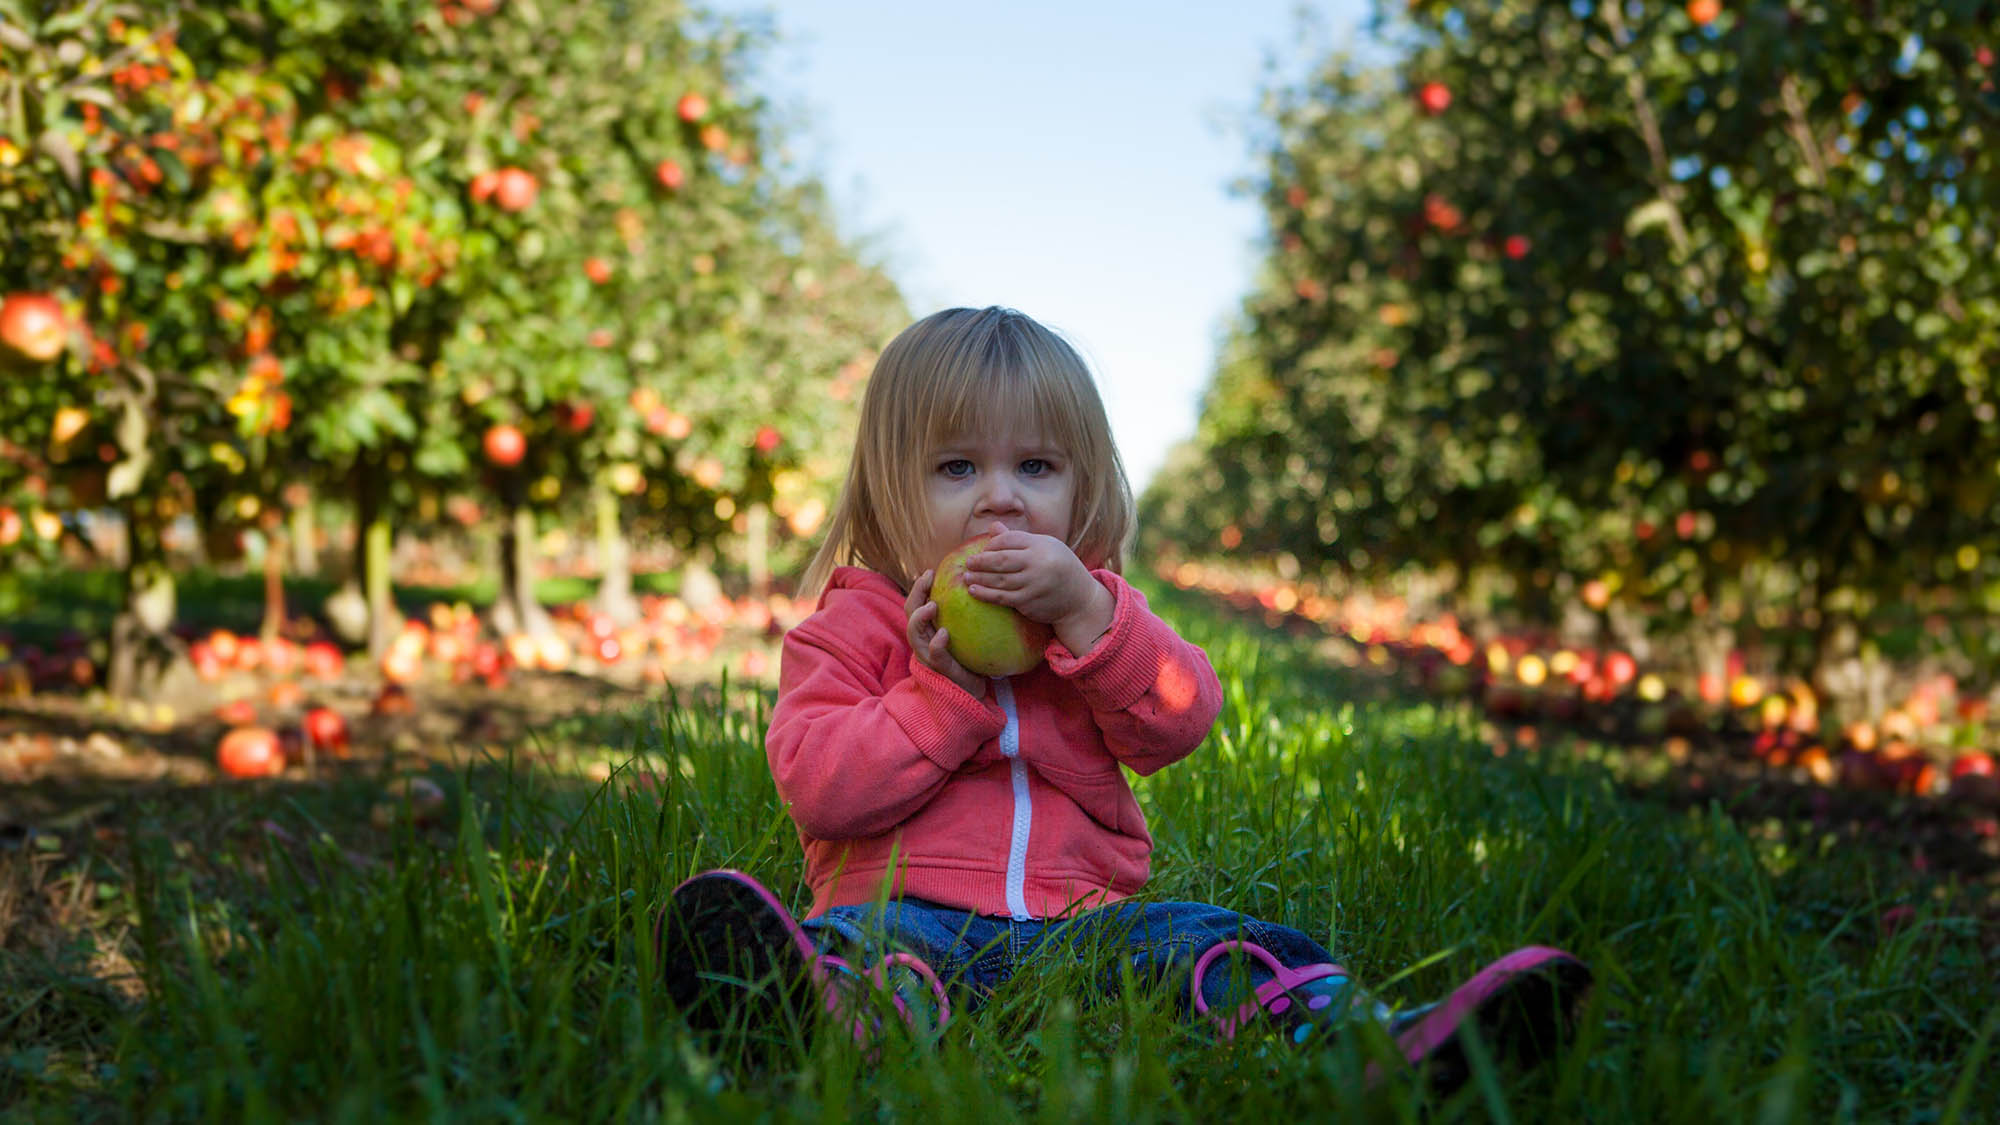 Girl Eating Apple at Orchard